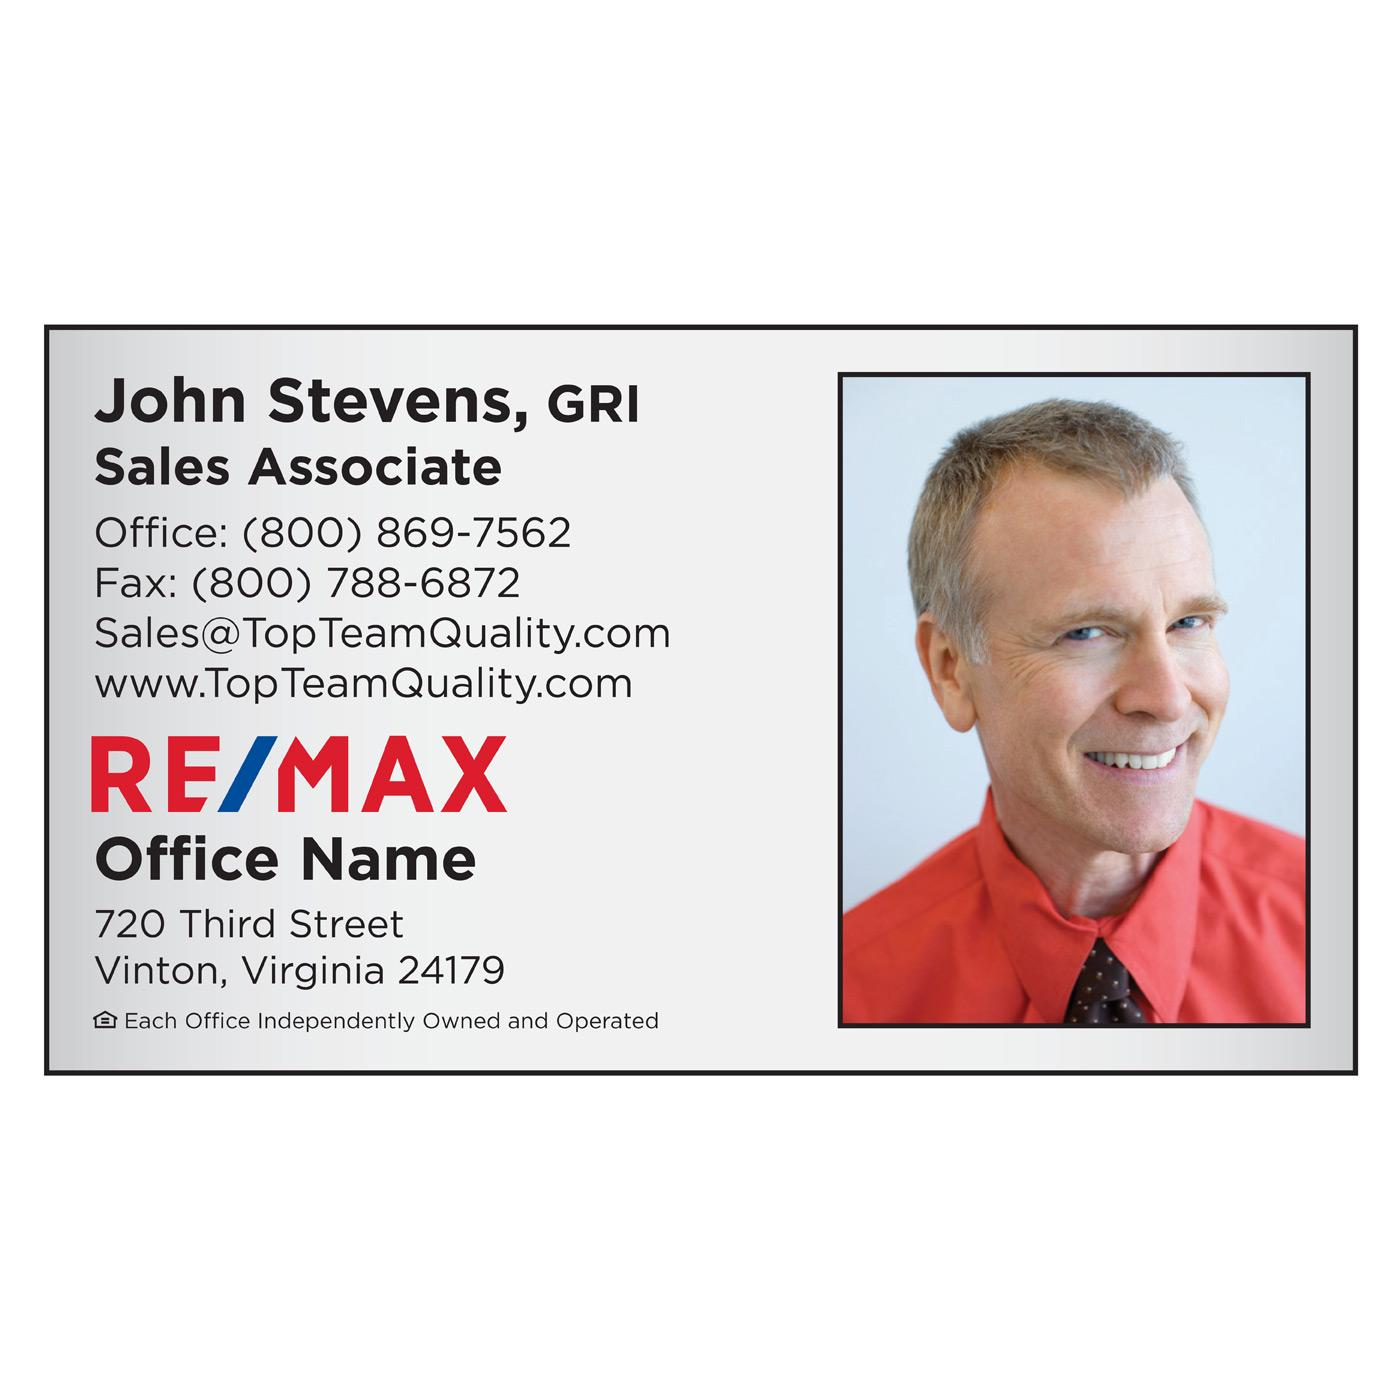 RE/MAX Photo Business Card